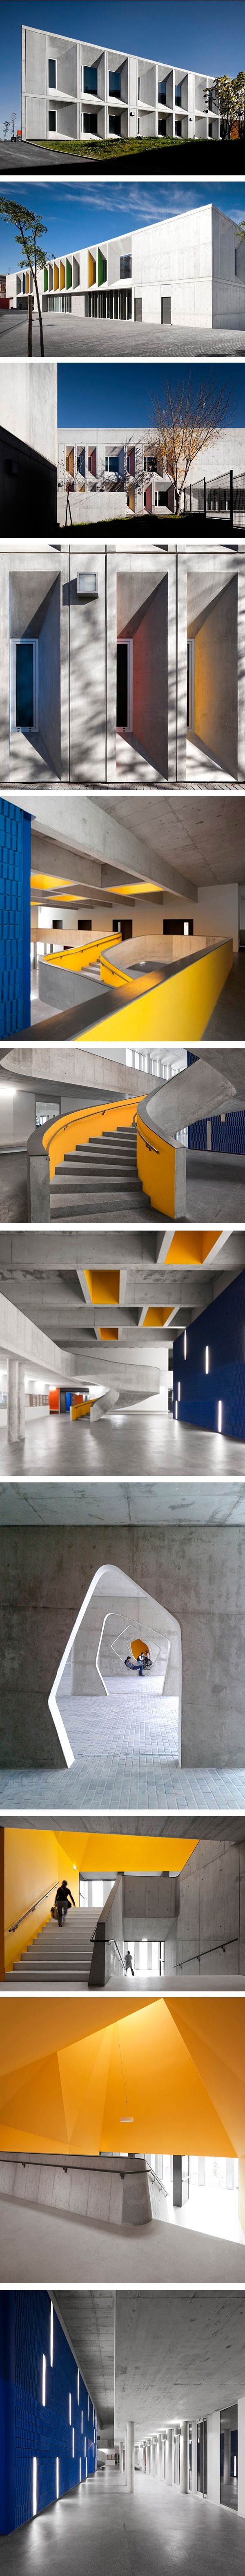 Braamcamp Freire Secondary School by CVDB Architects. Lisbon, Portugal